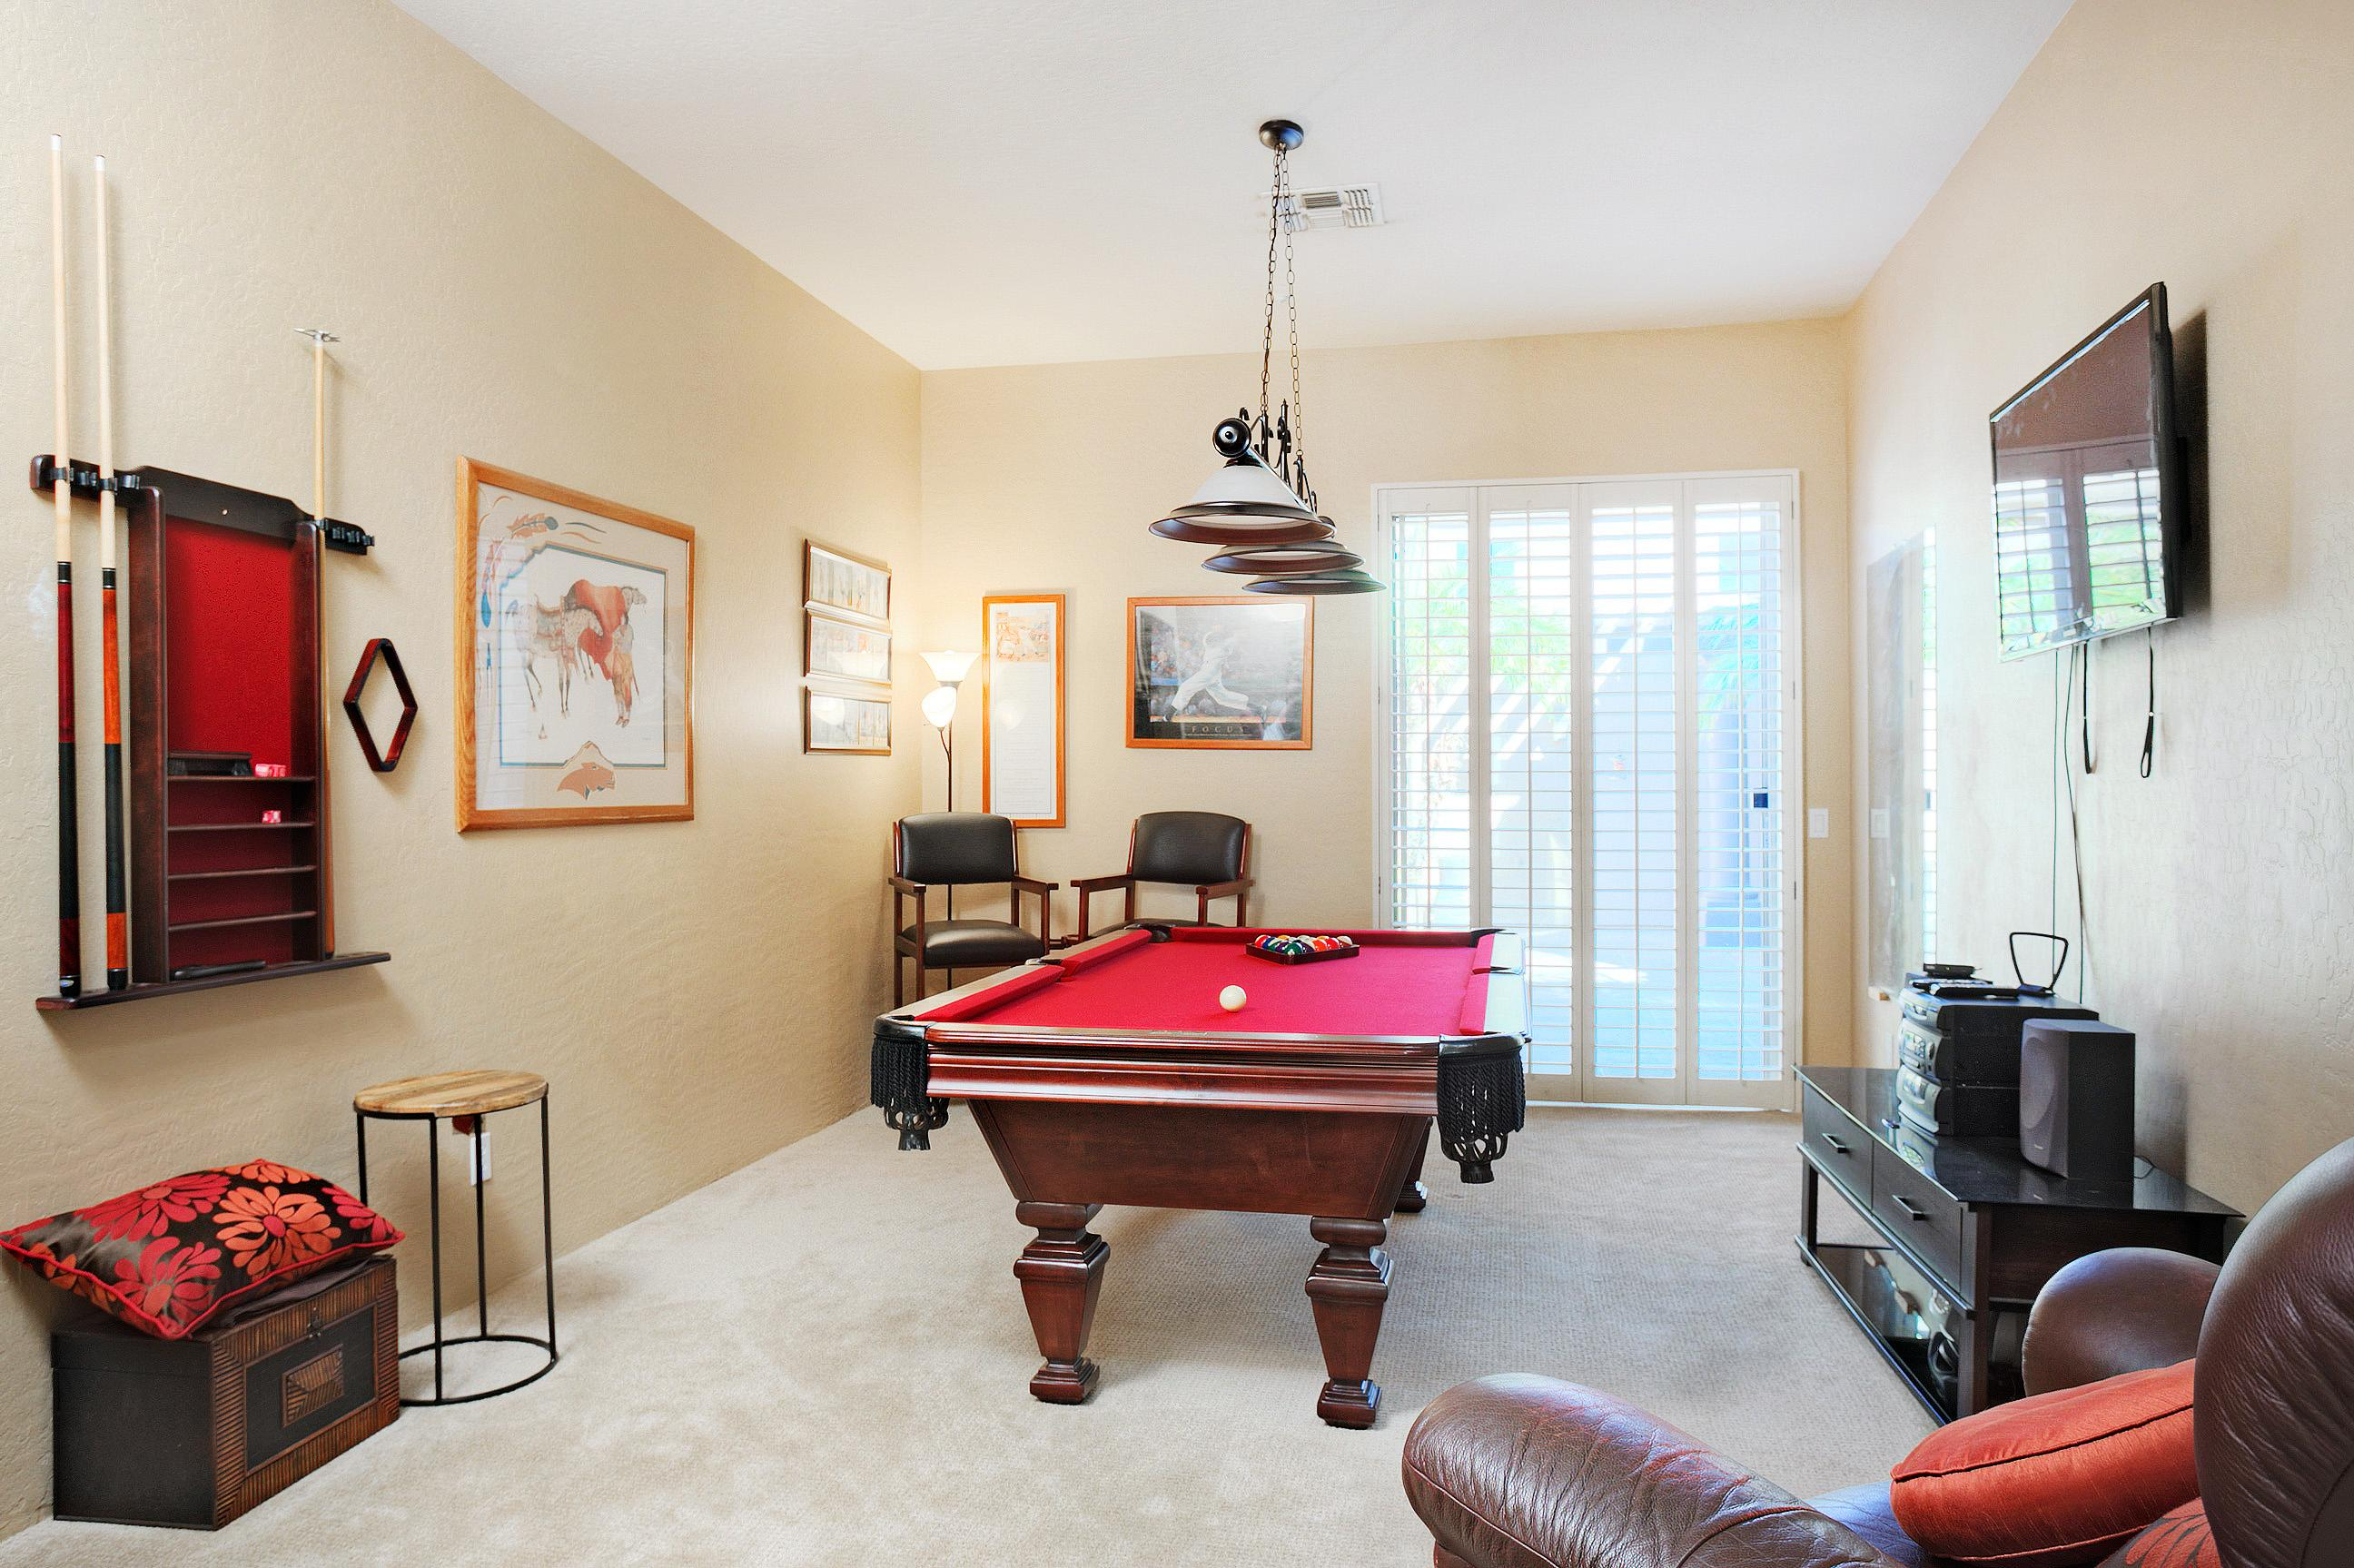 Classy game room with pool table, darts, and flat screen TV.